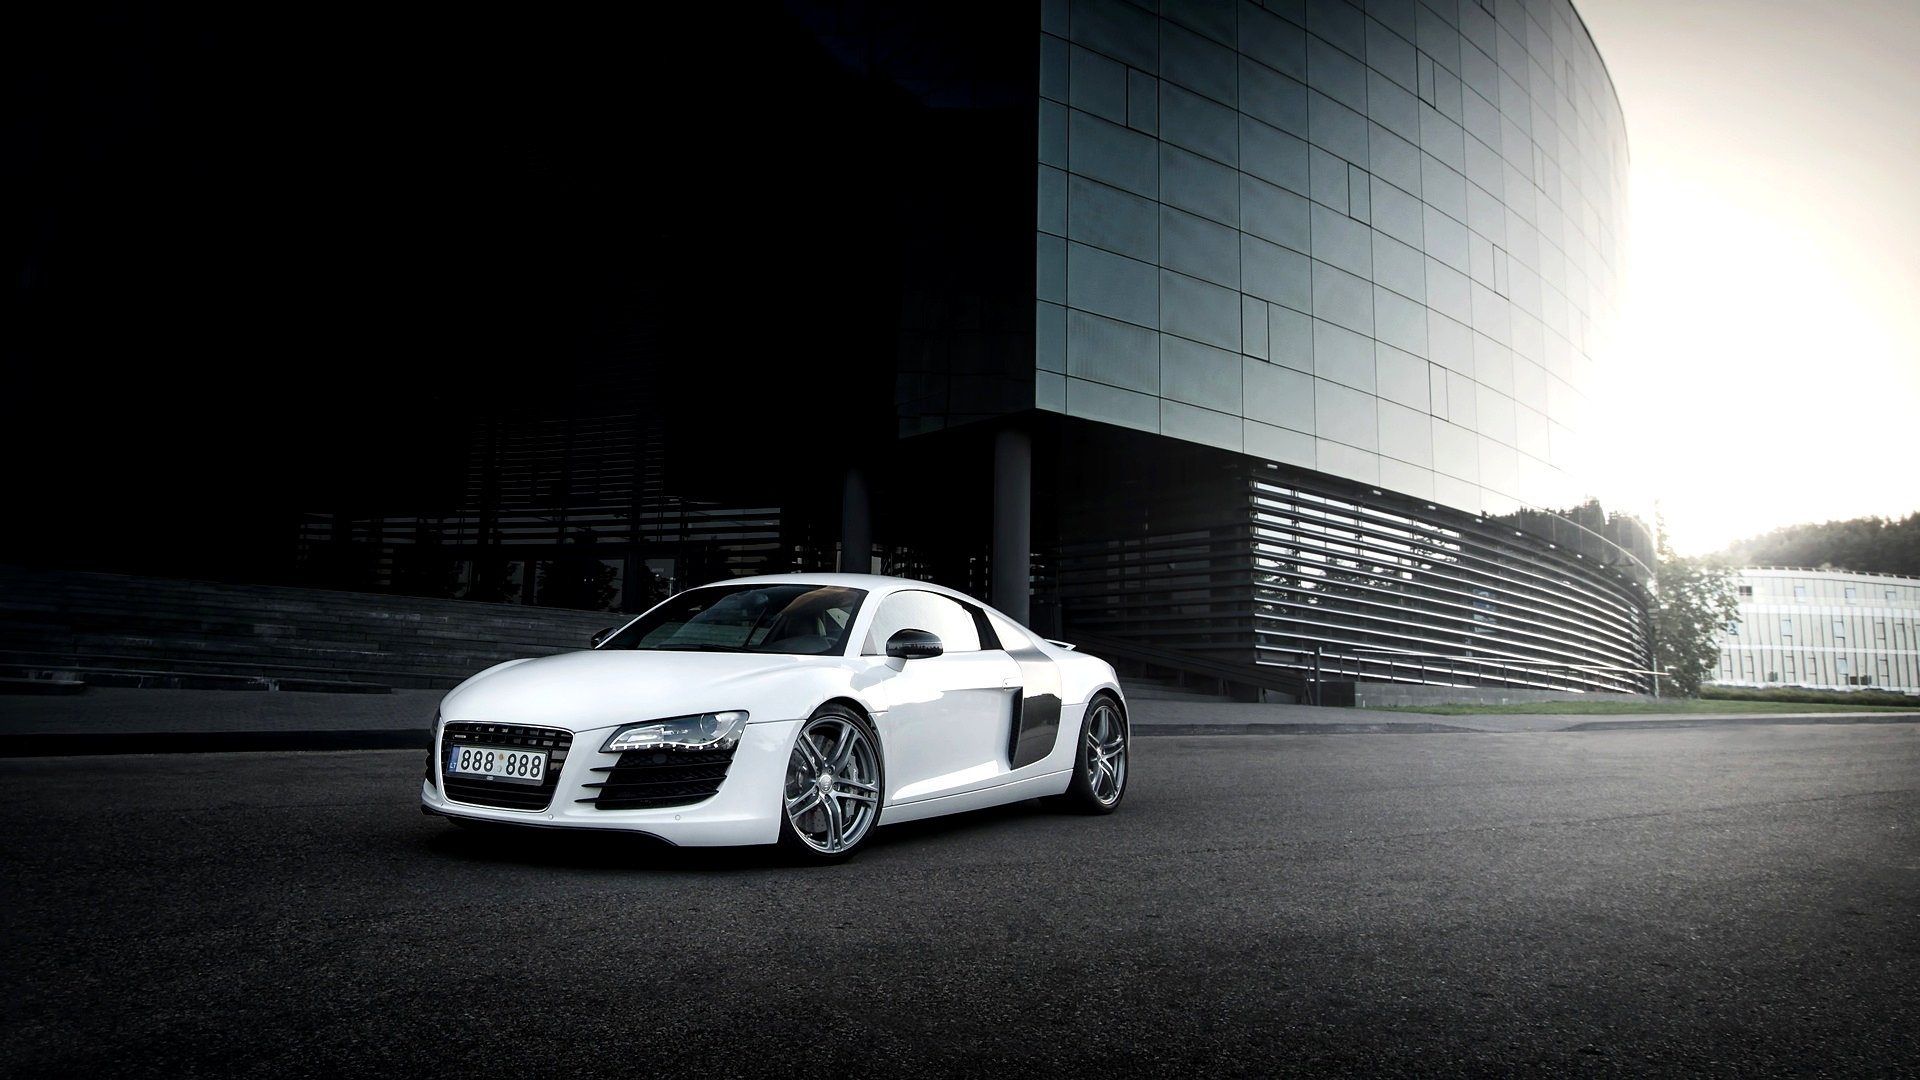 Download Hd 1080p Audi R8 Pc Wallpaper Id 452764 For Free